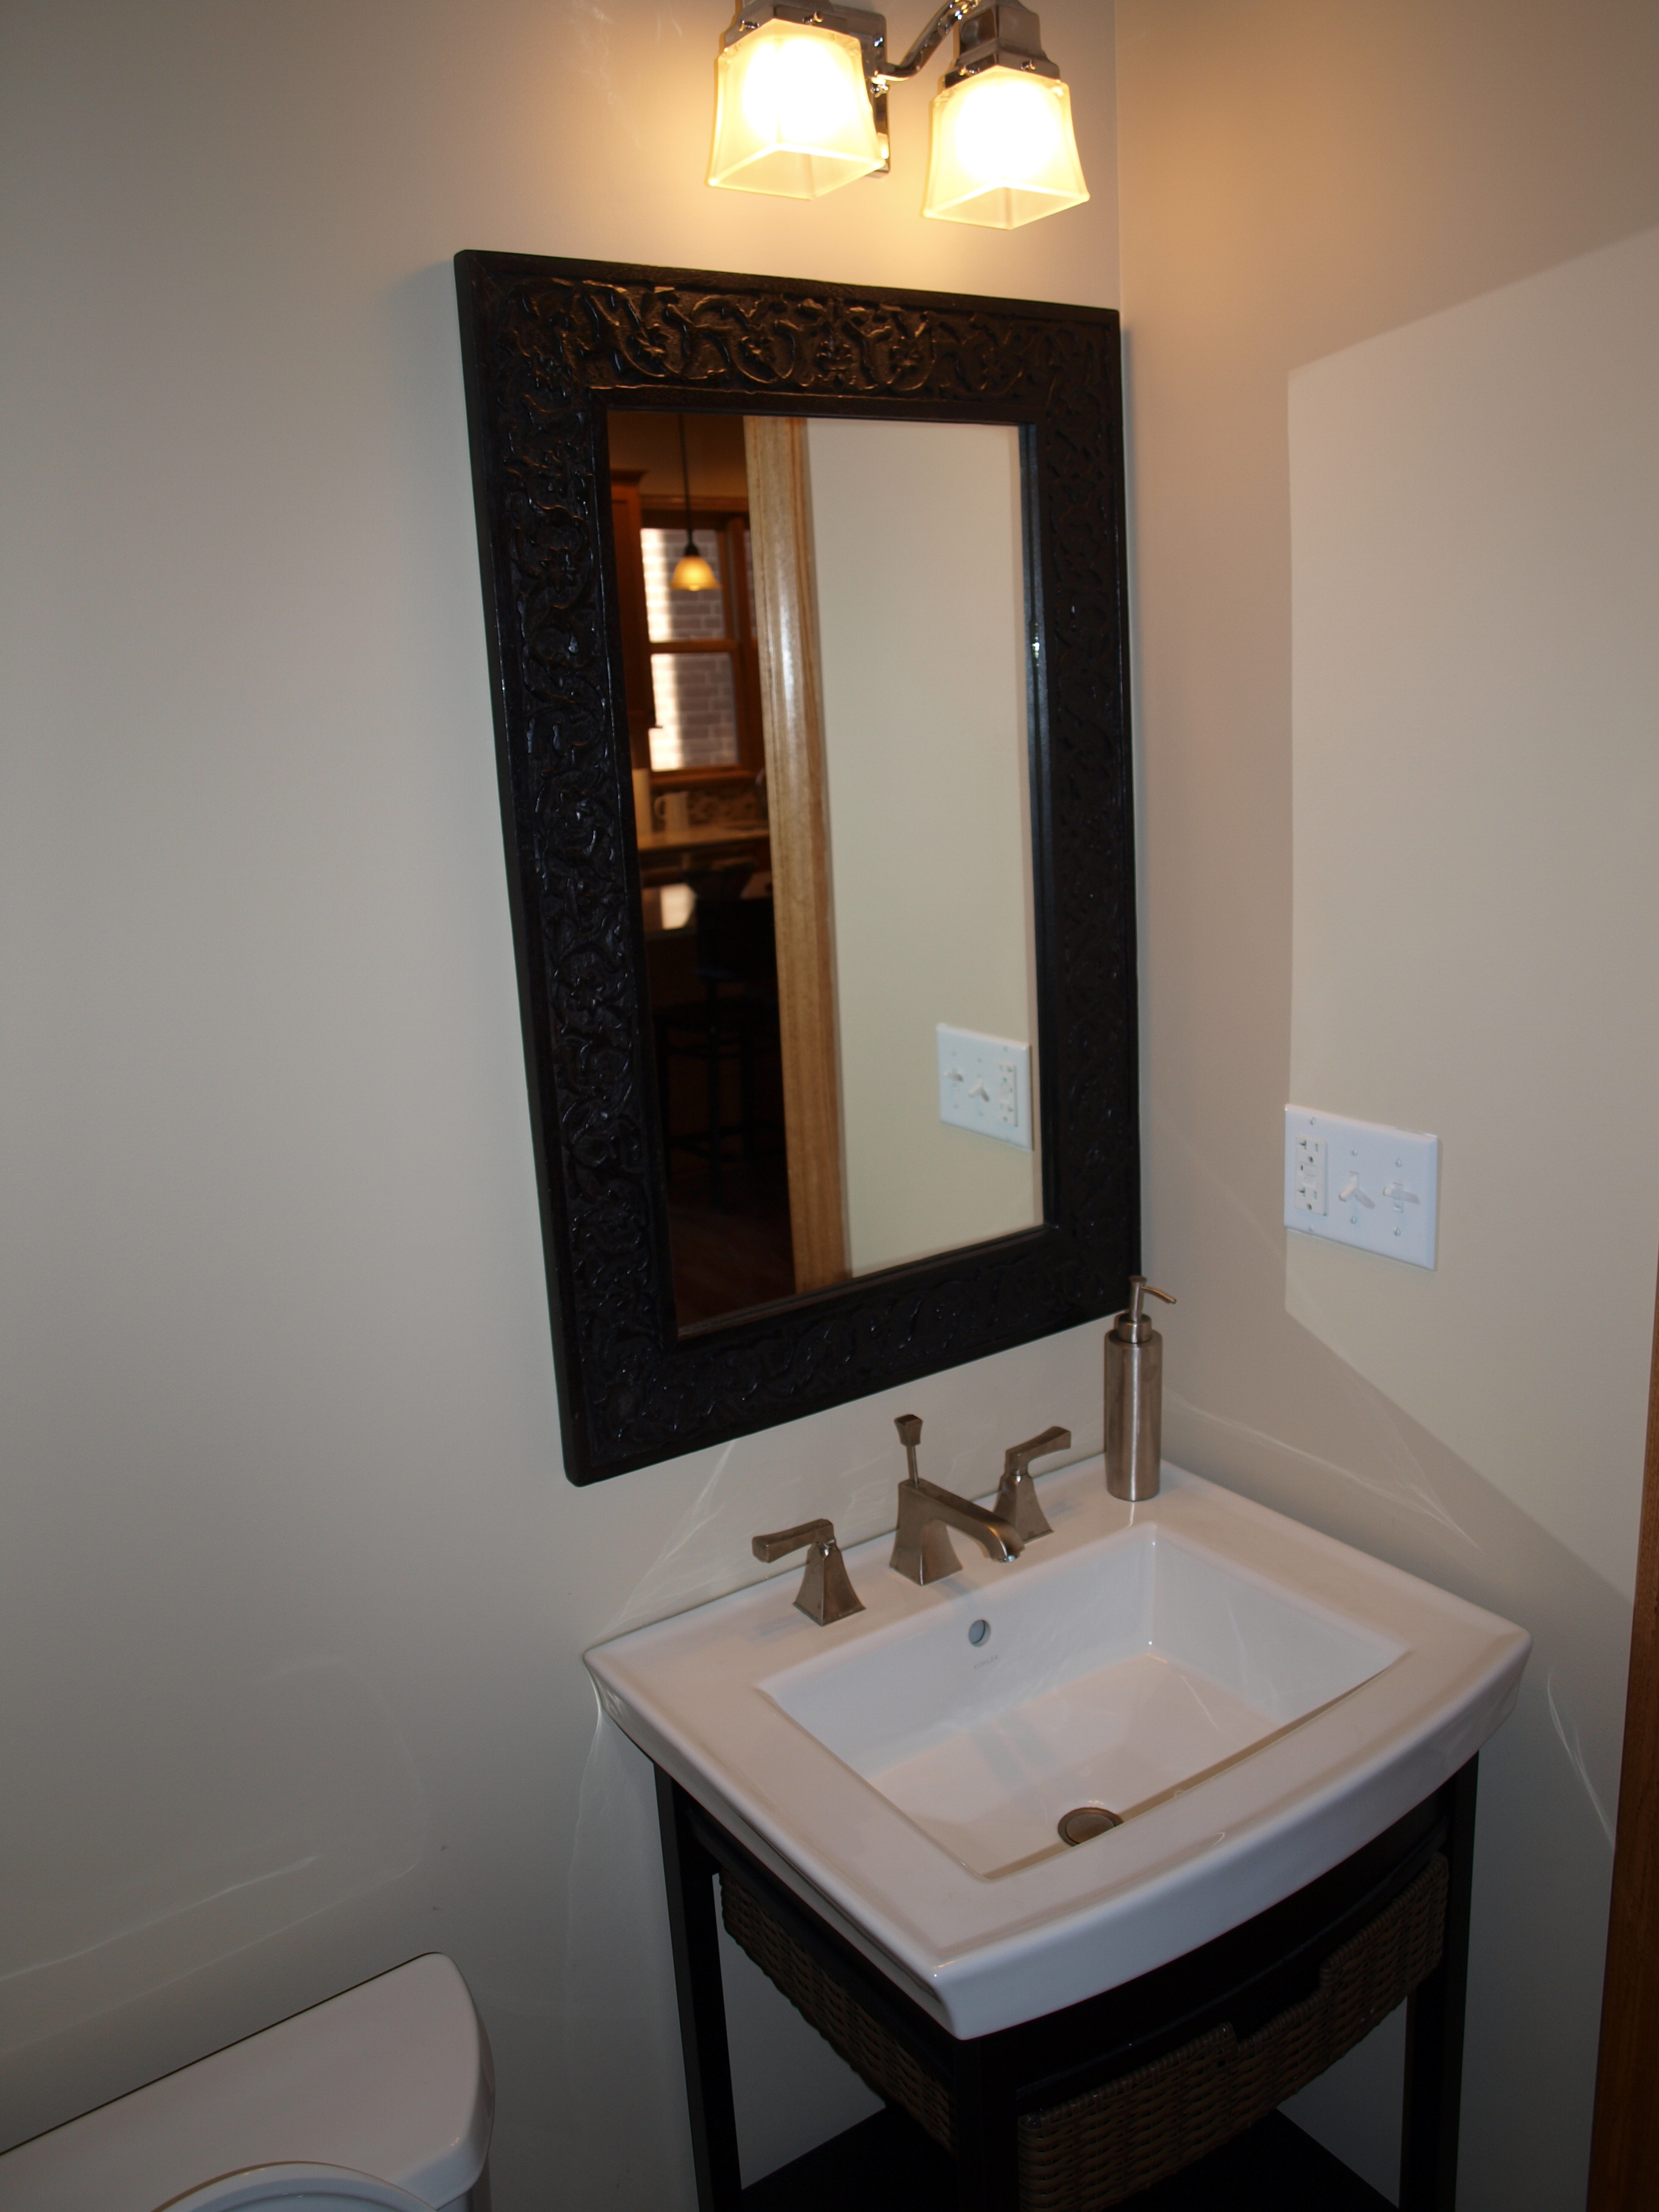 Bathroom Design Remodeling Services Chicago Lakeview Lincoln Park Gold Coast